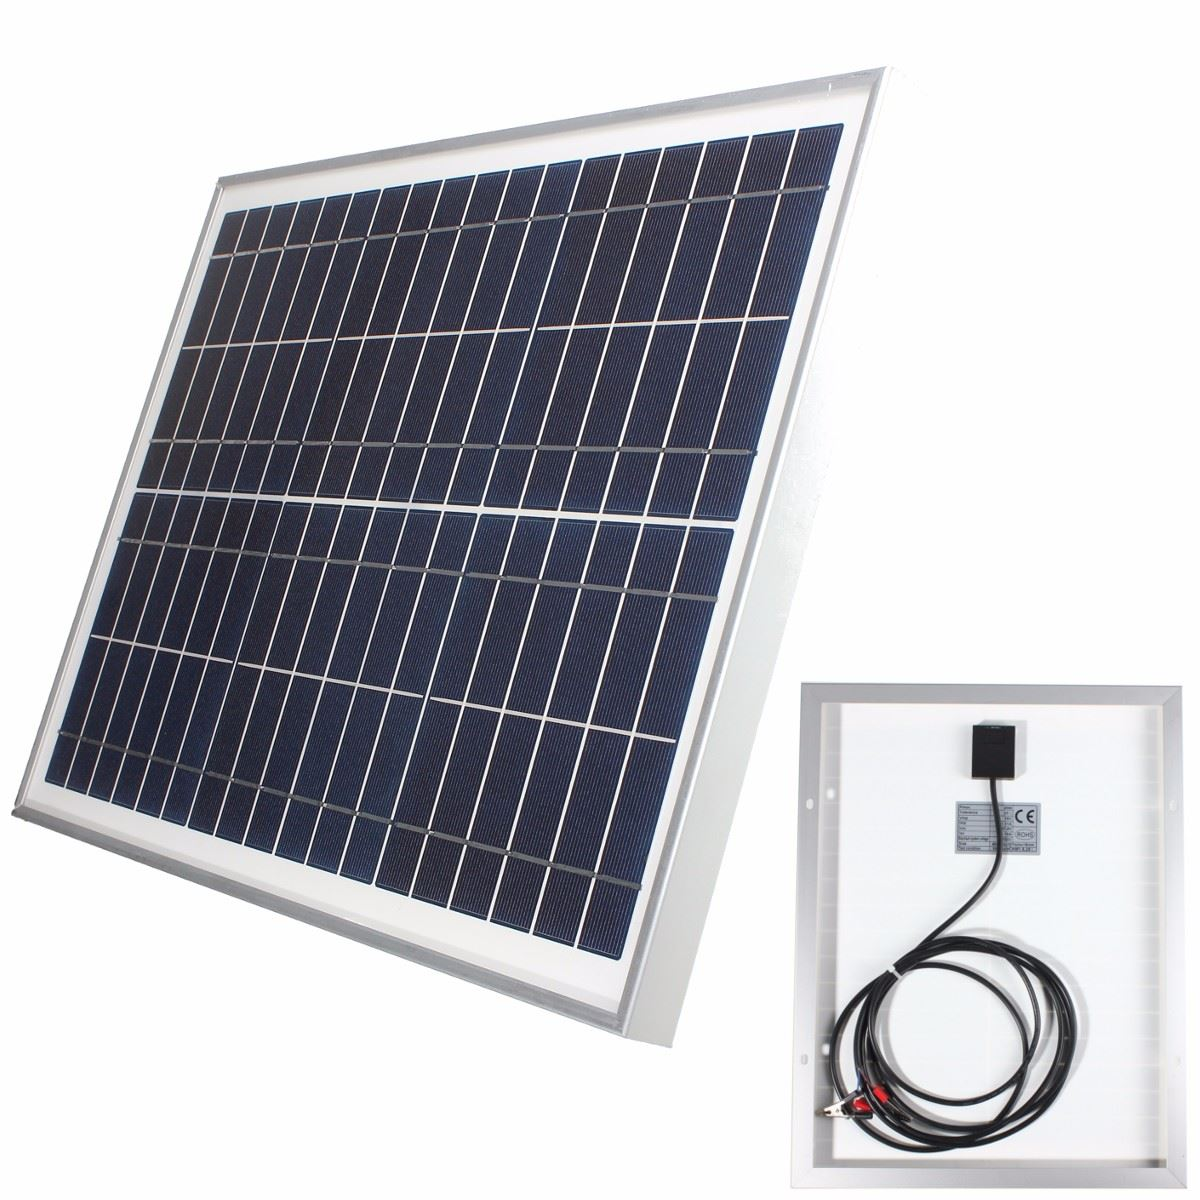 12V 20W Polycrystalline Stored Energy Power Poly Universal Solar Panel Module System Cells Charger+300cm Cable+2 Alligator Clips(China (Mainland))